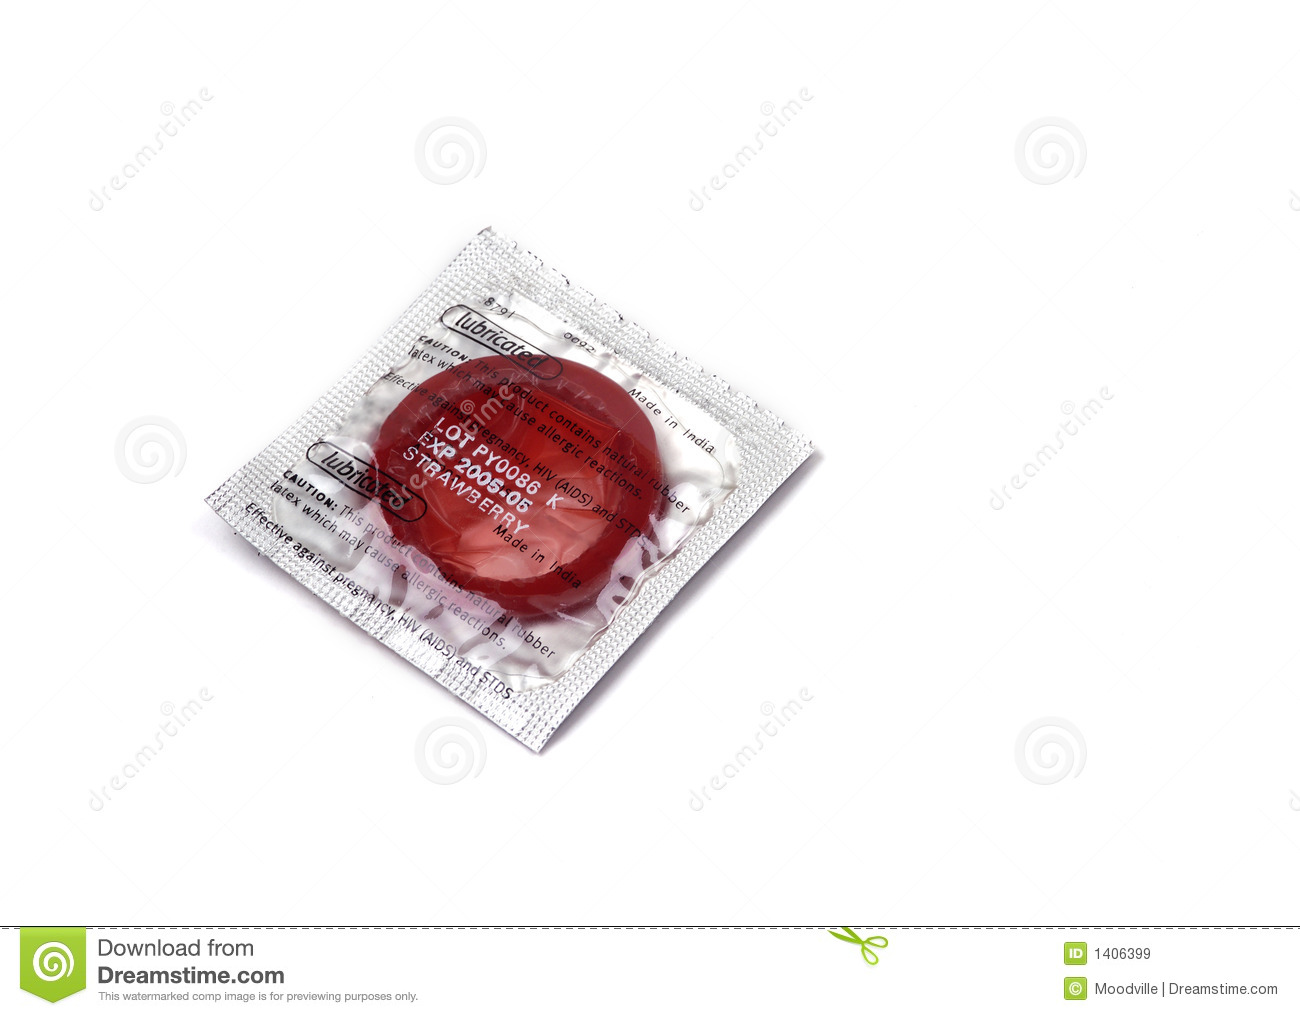 Objets - condom rouge